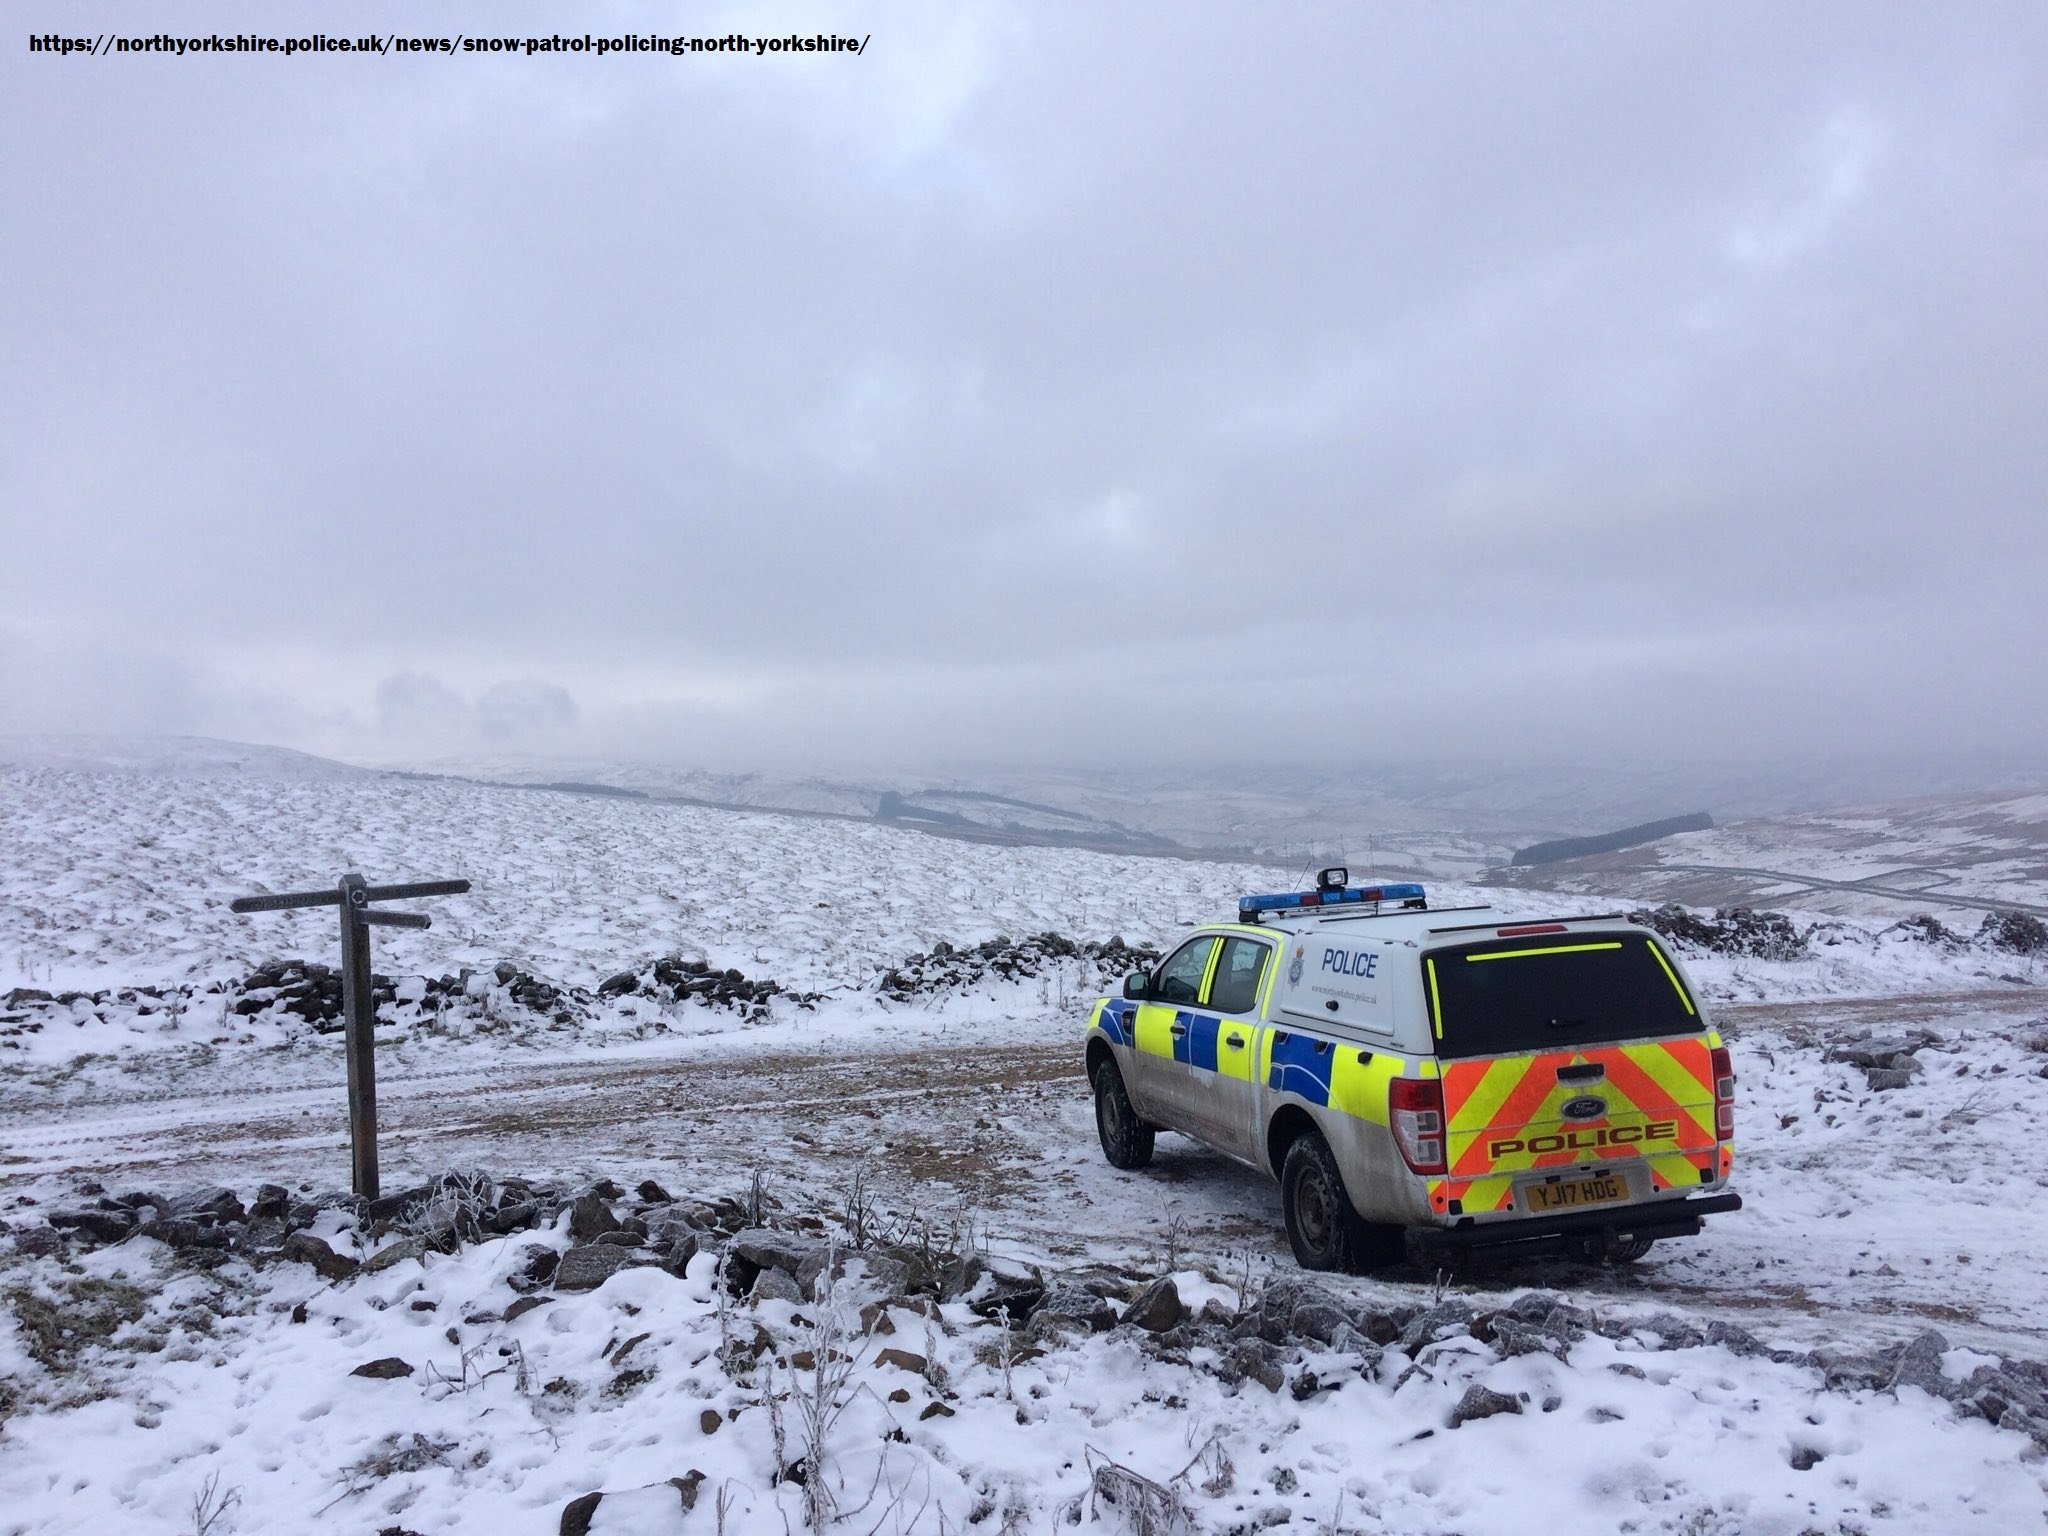 Operation-to-check-off-roaders-are-legal-in-the-Dales-in-December-2017